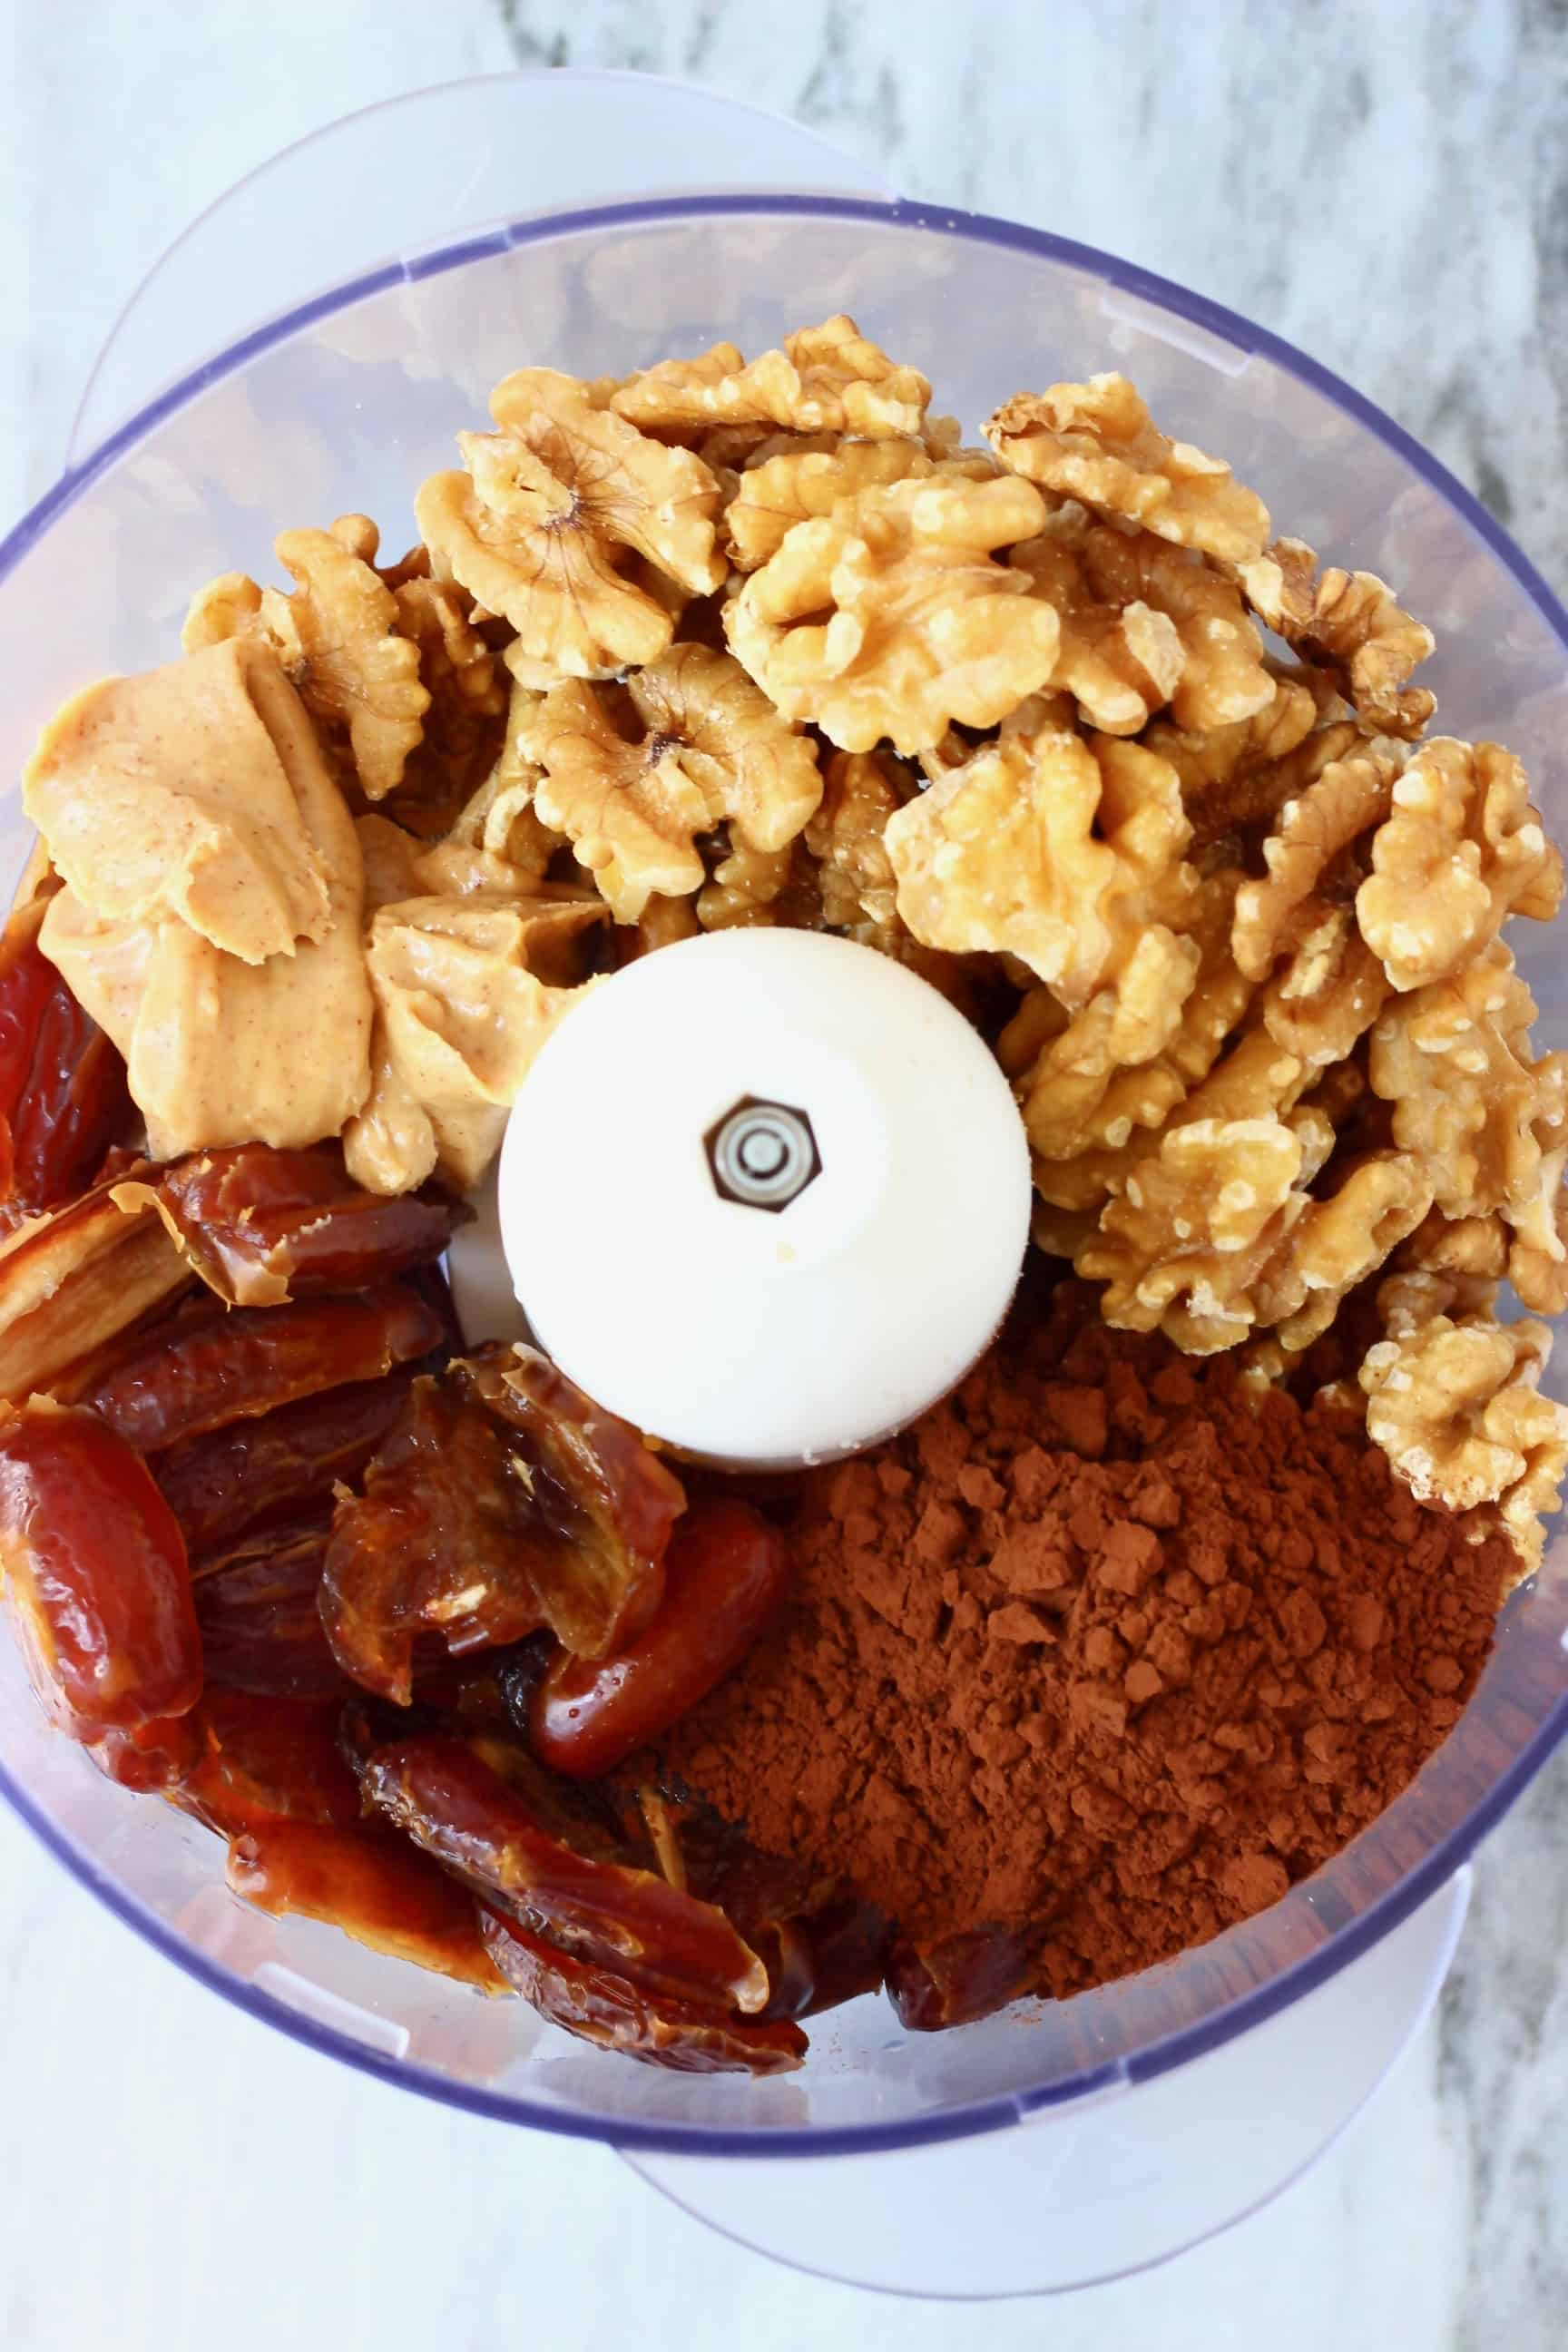 Dates, peanut butter, walnuts and cocoa powder in a food processor